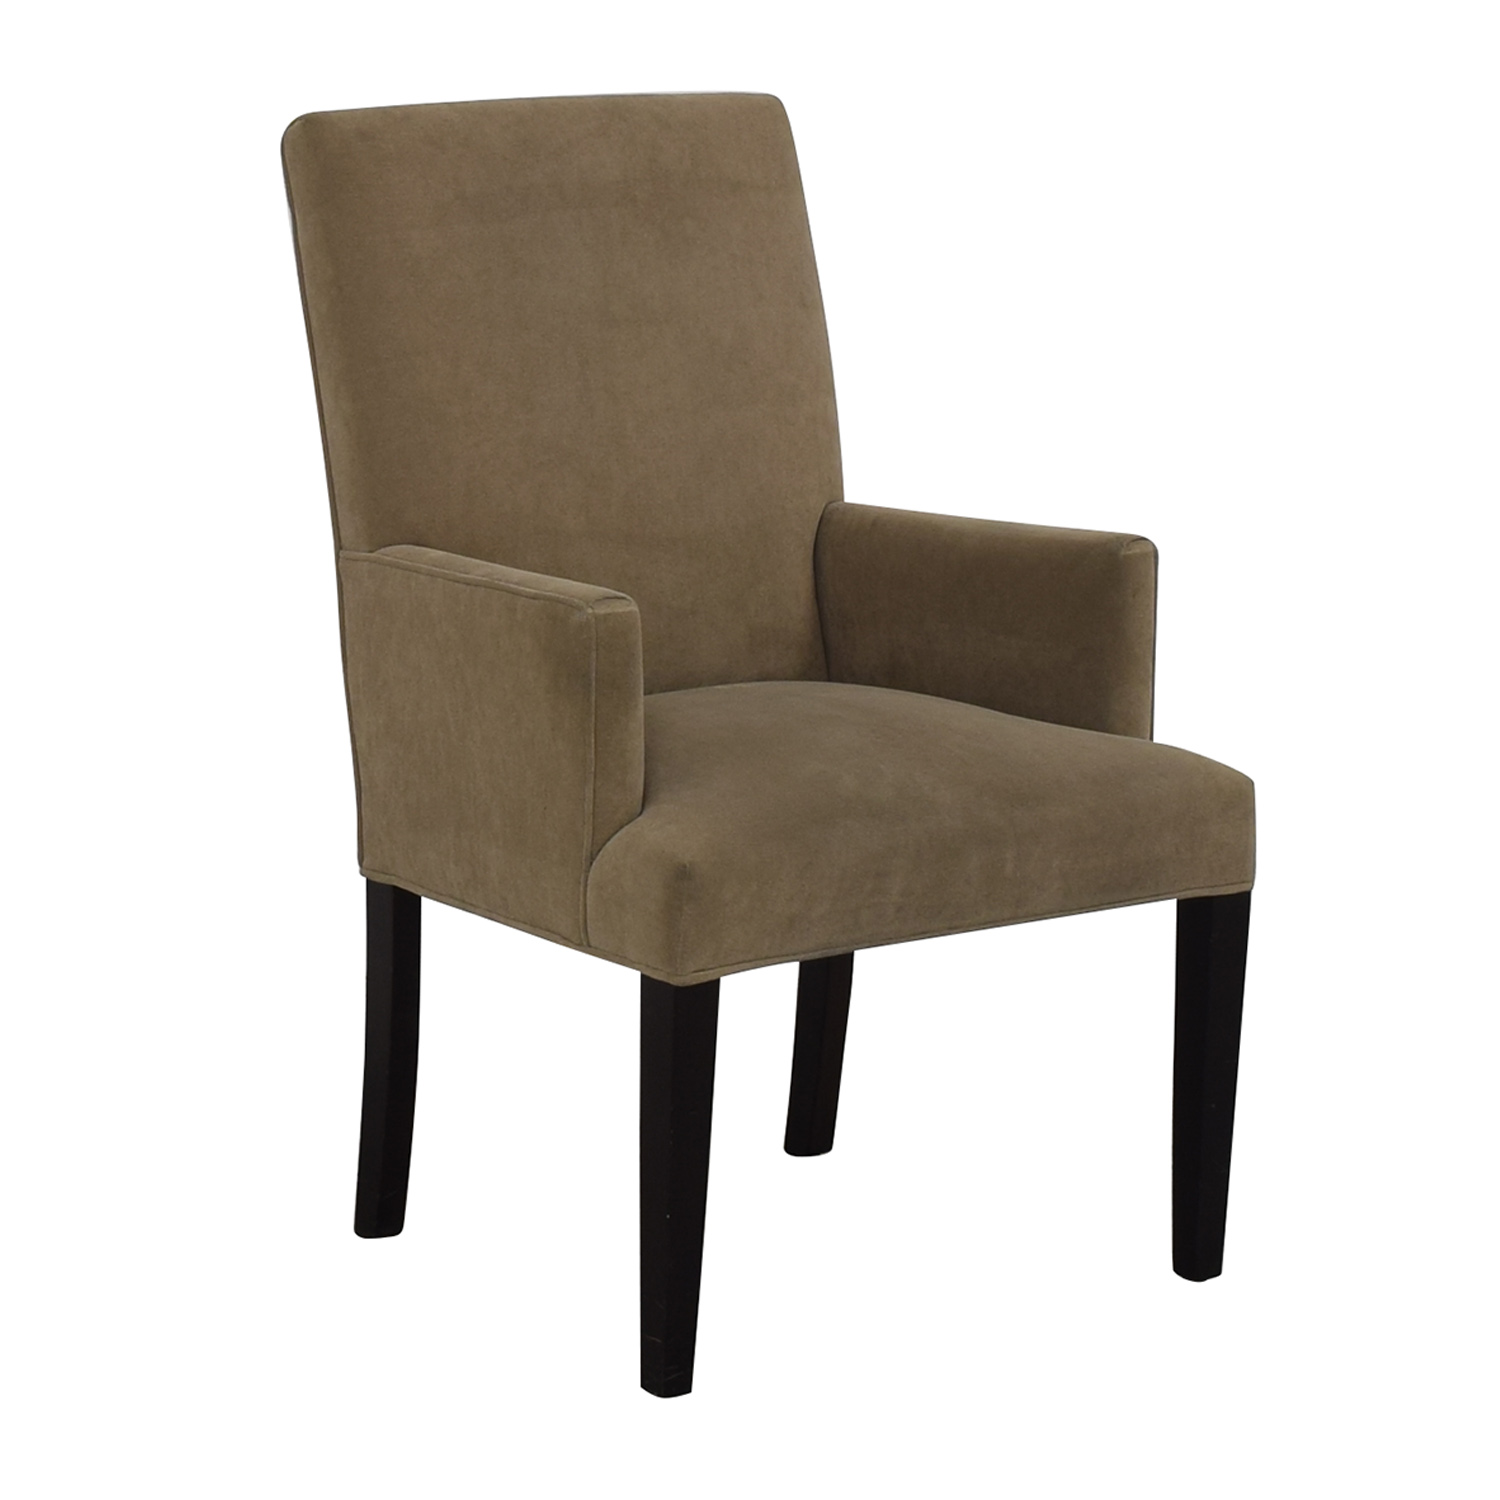 buy Crate & Barrel Tan Dining Chair Crate & Barrel Chairs